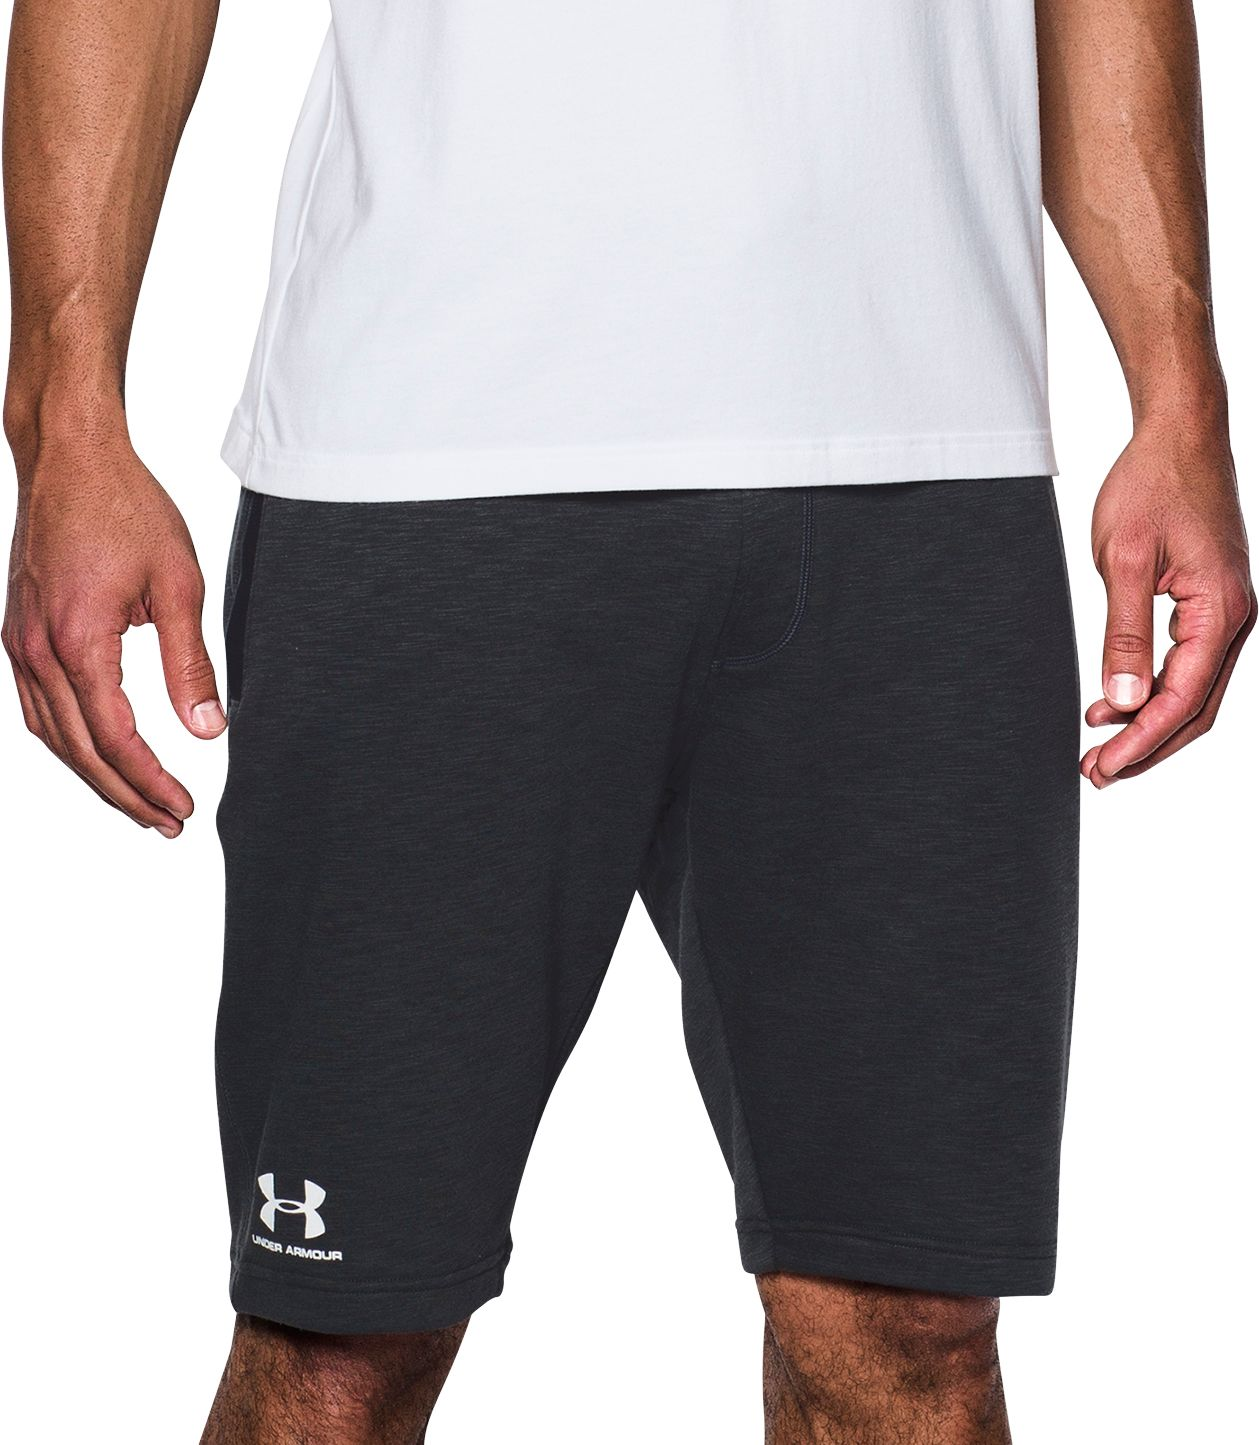 under armour 5 inch shorts. under armour men\u0027s sportstyle tapered fleece sweatshorts 5 inch shorts